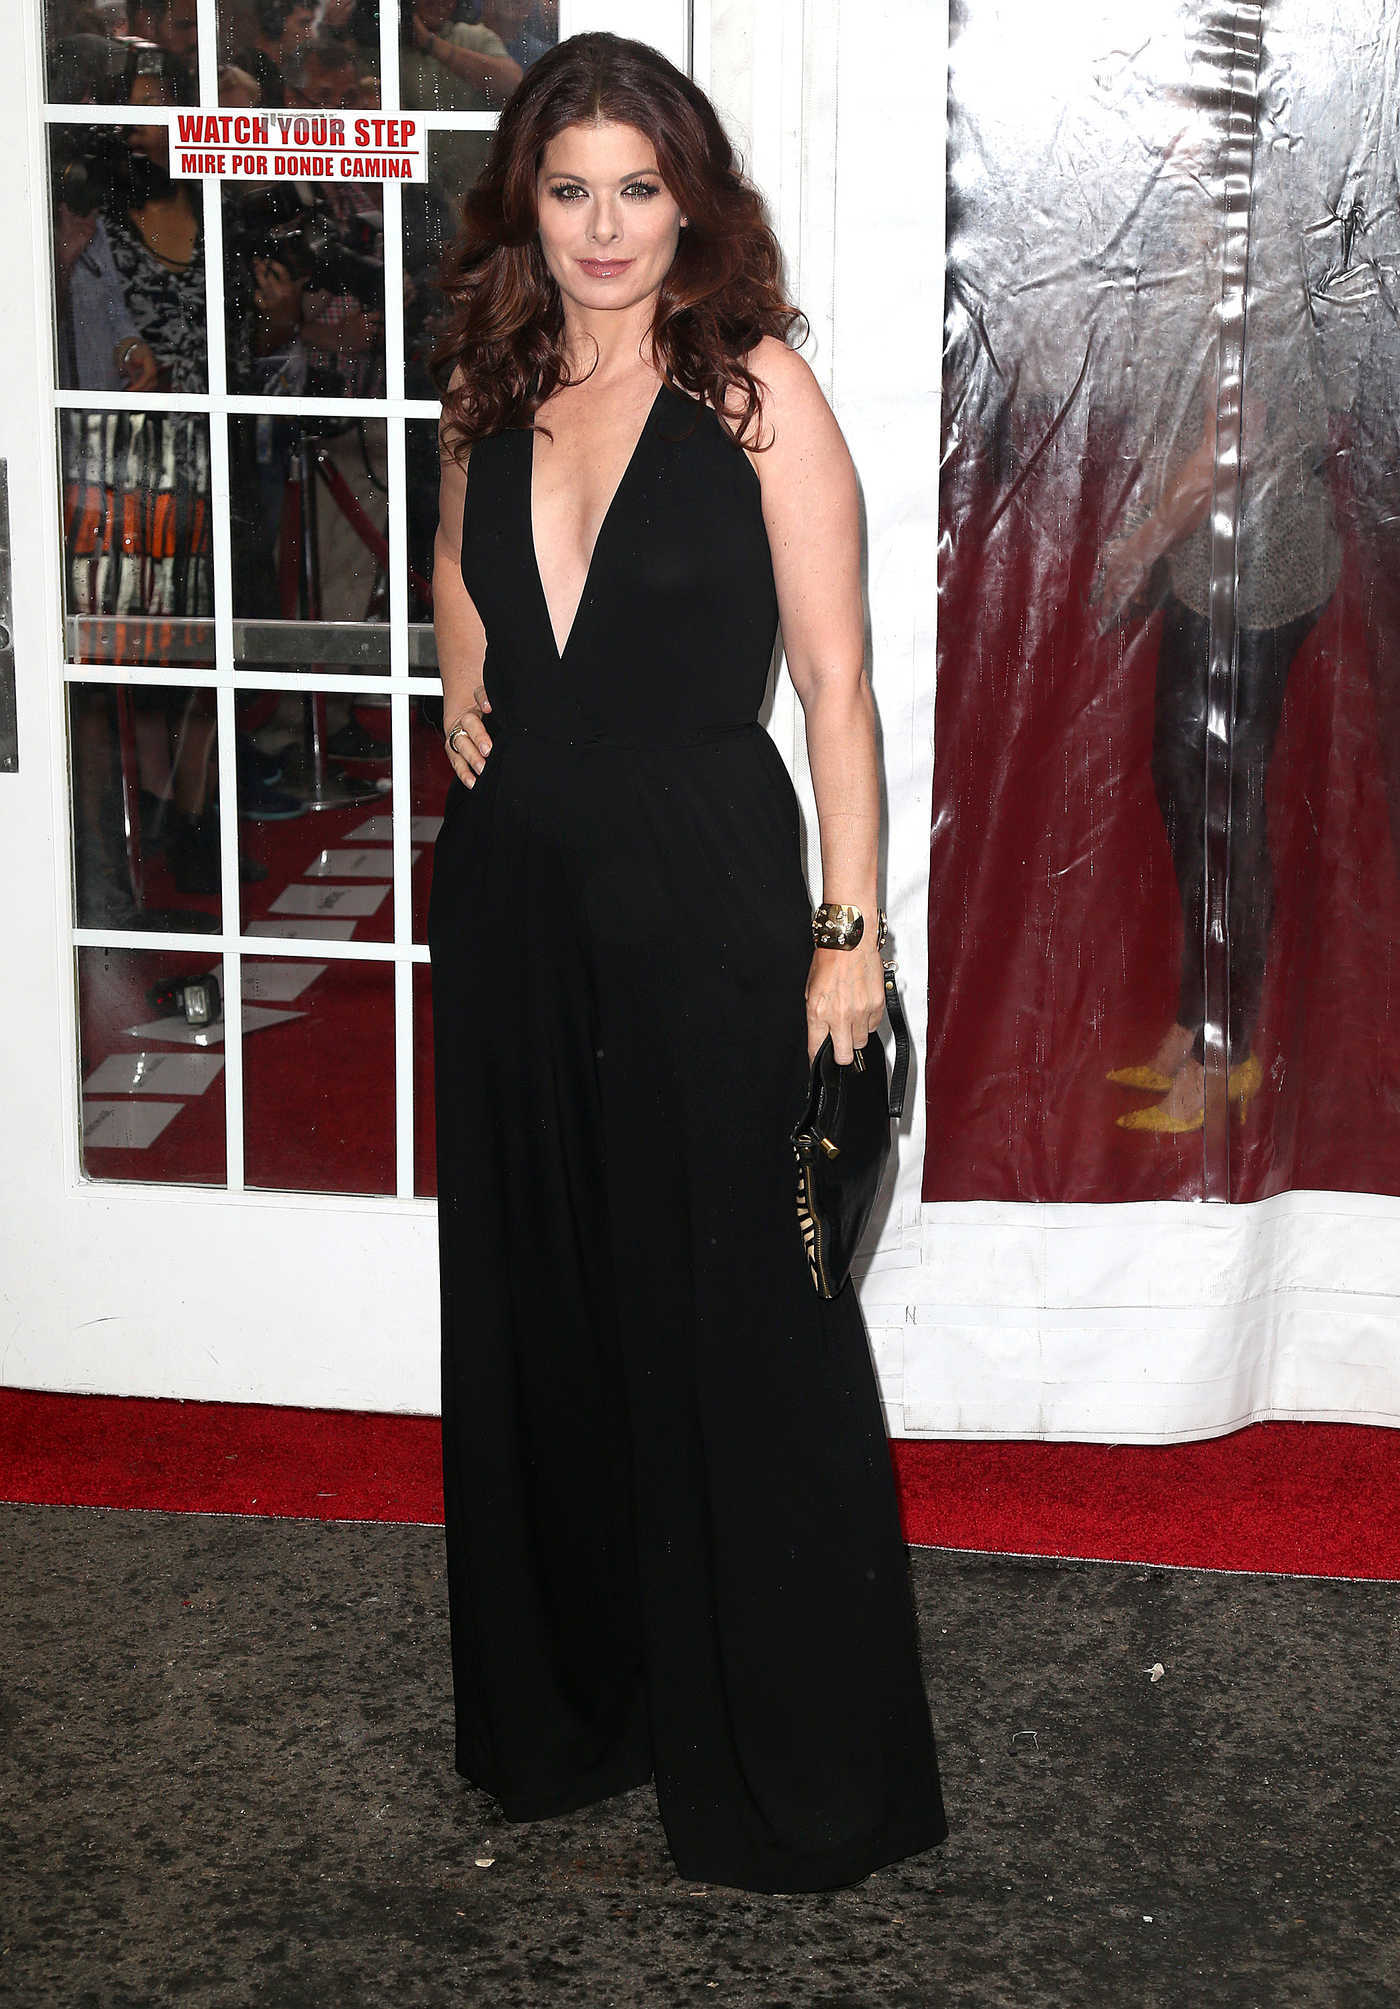 Debra Messing at the Cafe Society Premiere in New York City 07/13/2016